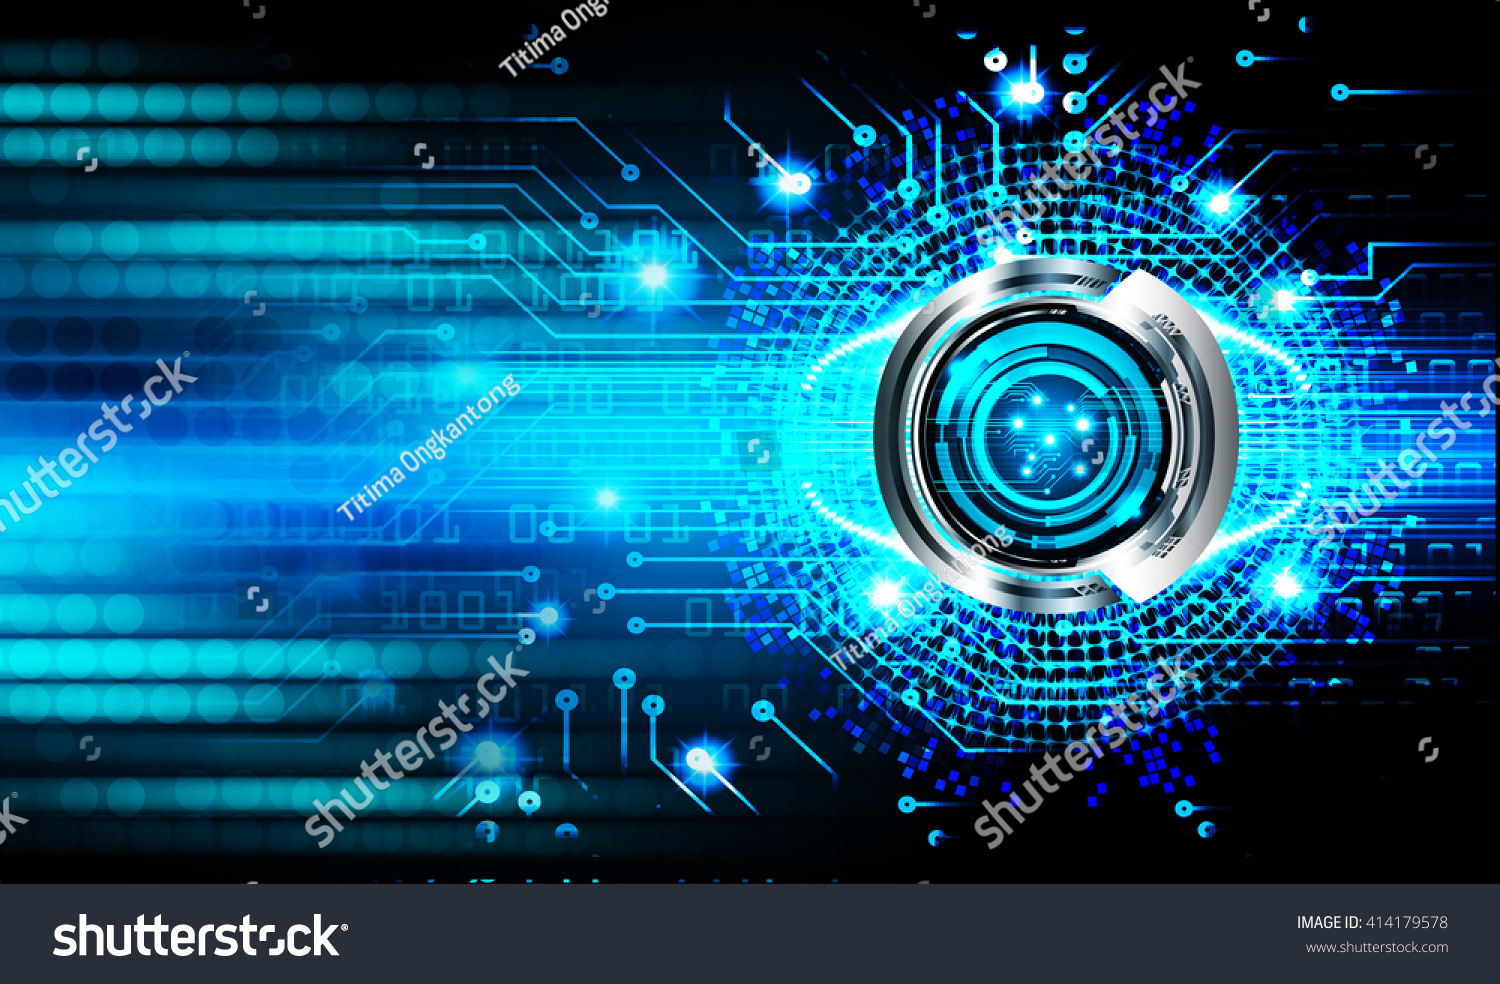 Electrical Circuit Free Create Electrical Circuit Software Download